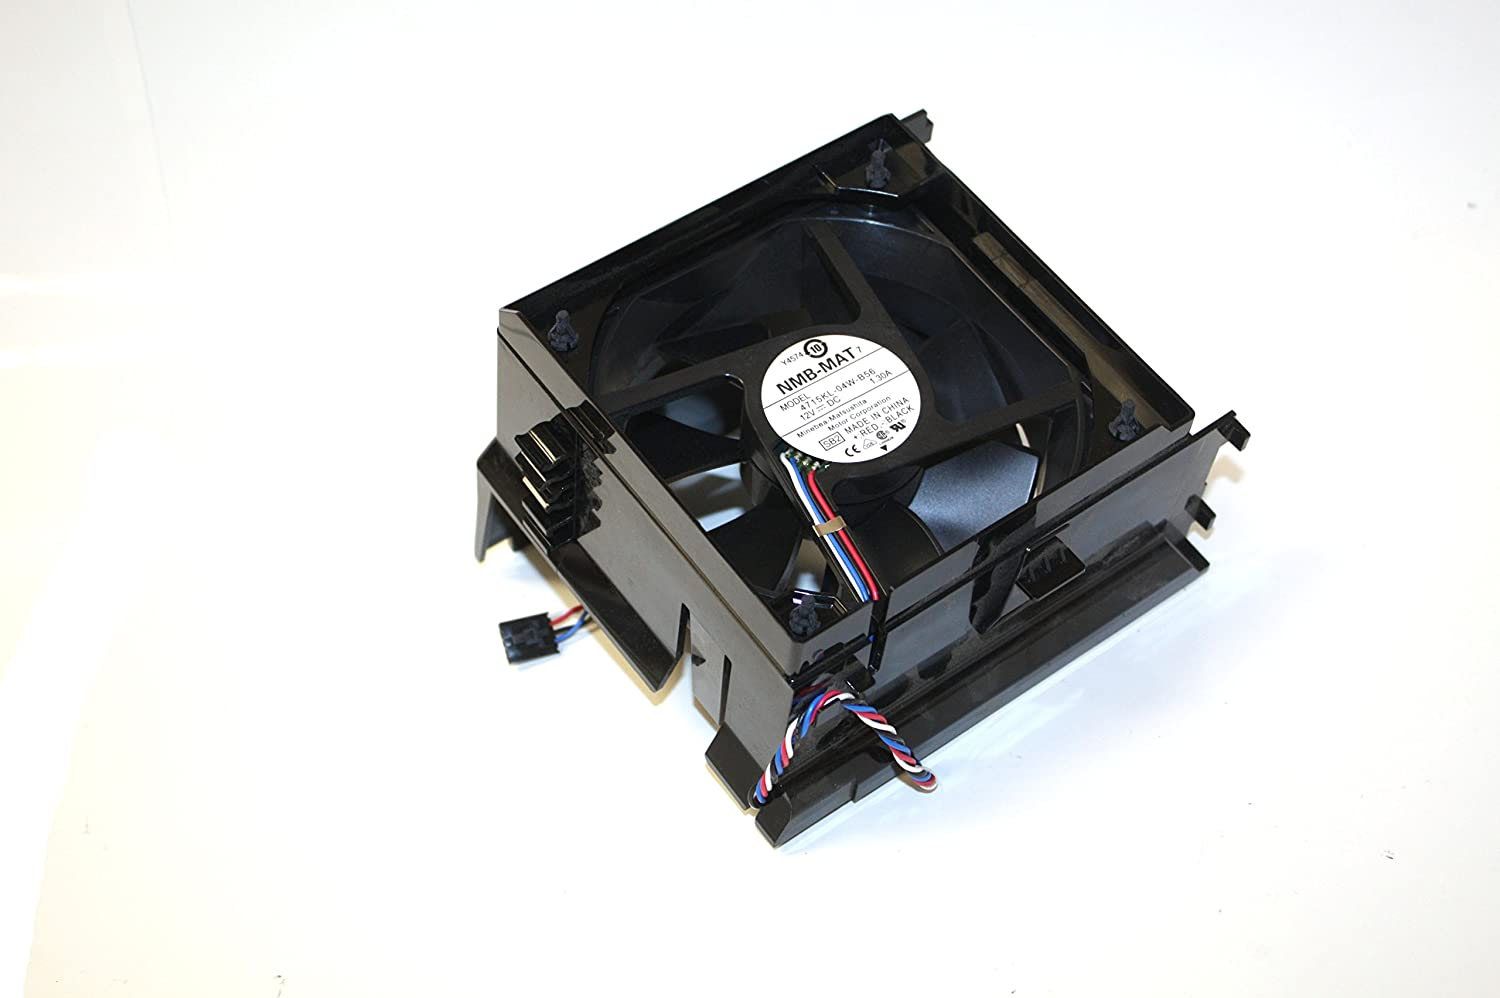 Genuine Dell H7058 PC Case CPU Cooling Fan Assembly For Dimension E310, E510, E520, E521, 3100, 5000, 5100, and 5150 Mini Tower (MT) Fan Part/Model Numbers: Y4574, U6368, 4715KL-04W-B56